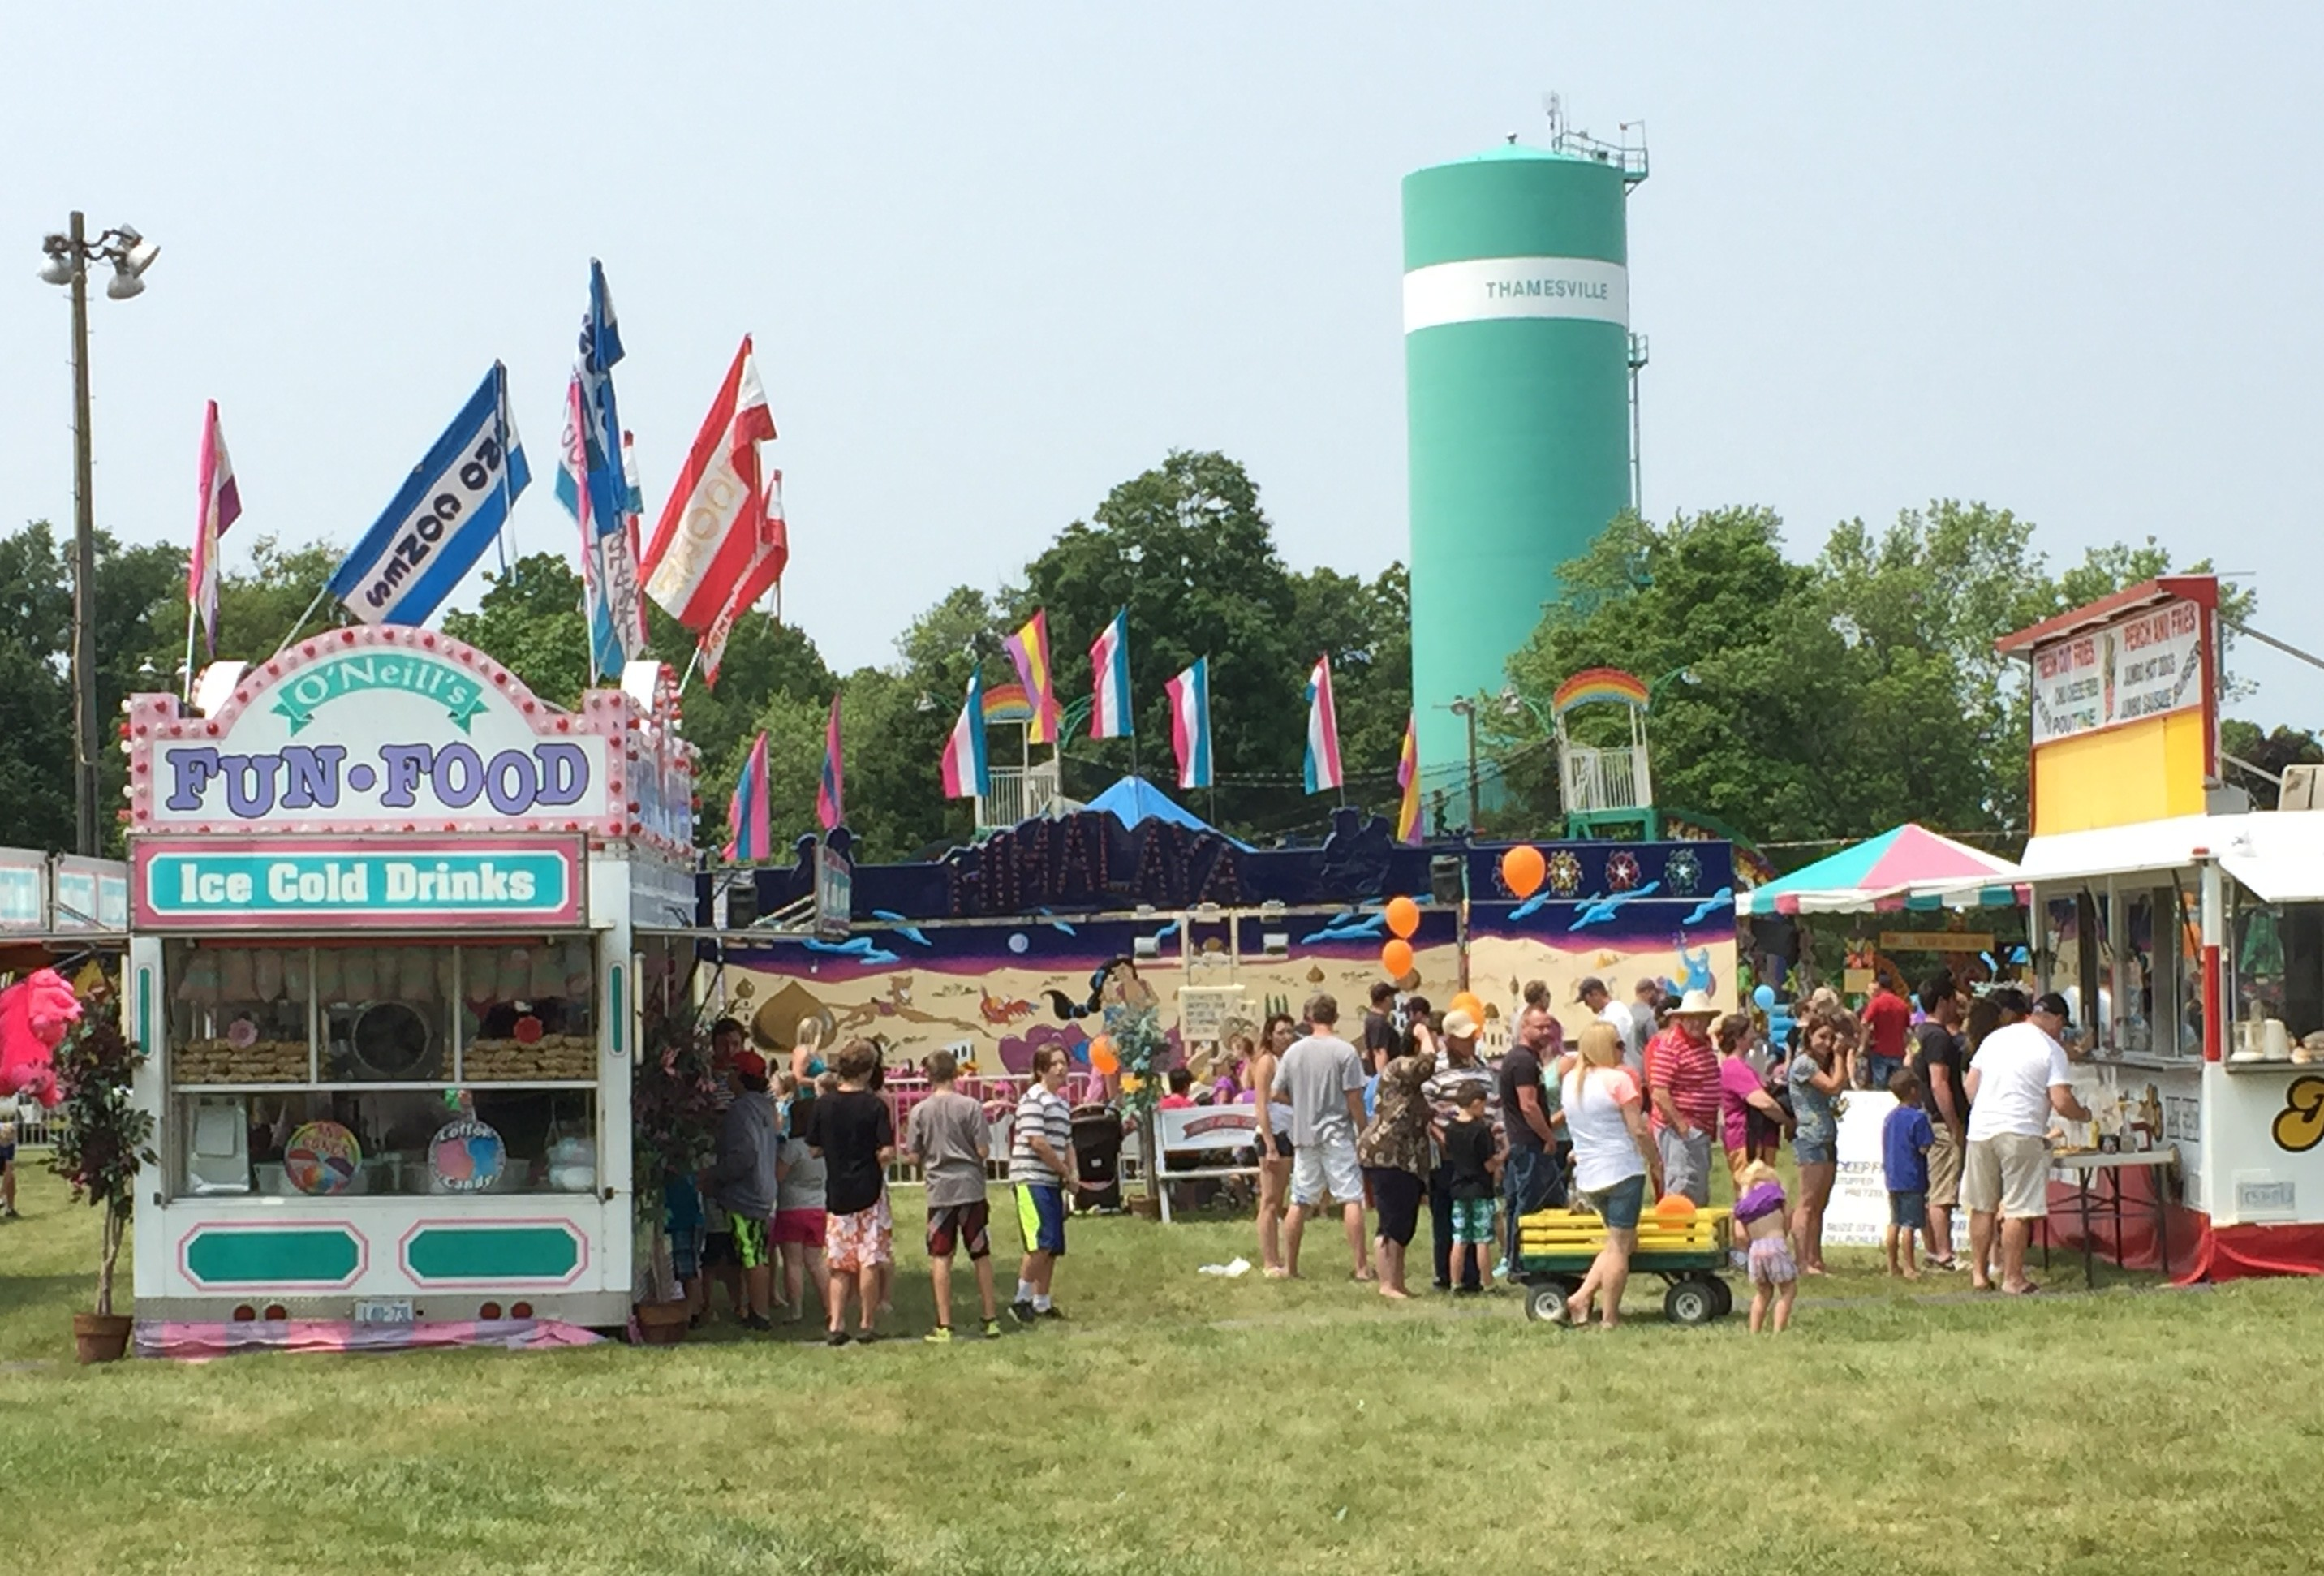 Residents from Thamesville and the surrounding area attend the 40th annual Threshing Festival in Thamesville, July 4, 2015. (Photo by the Blackburn Radio Summer Patrol)